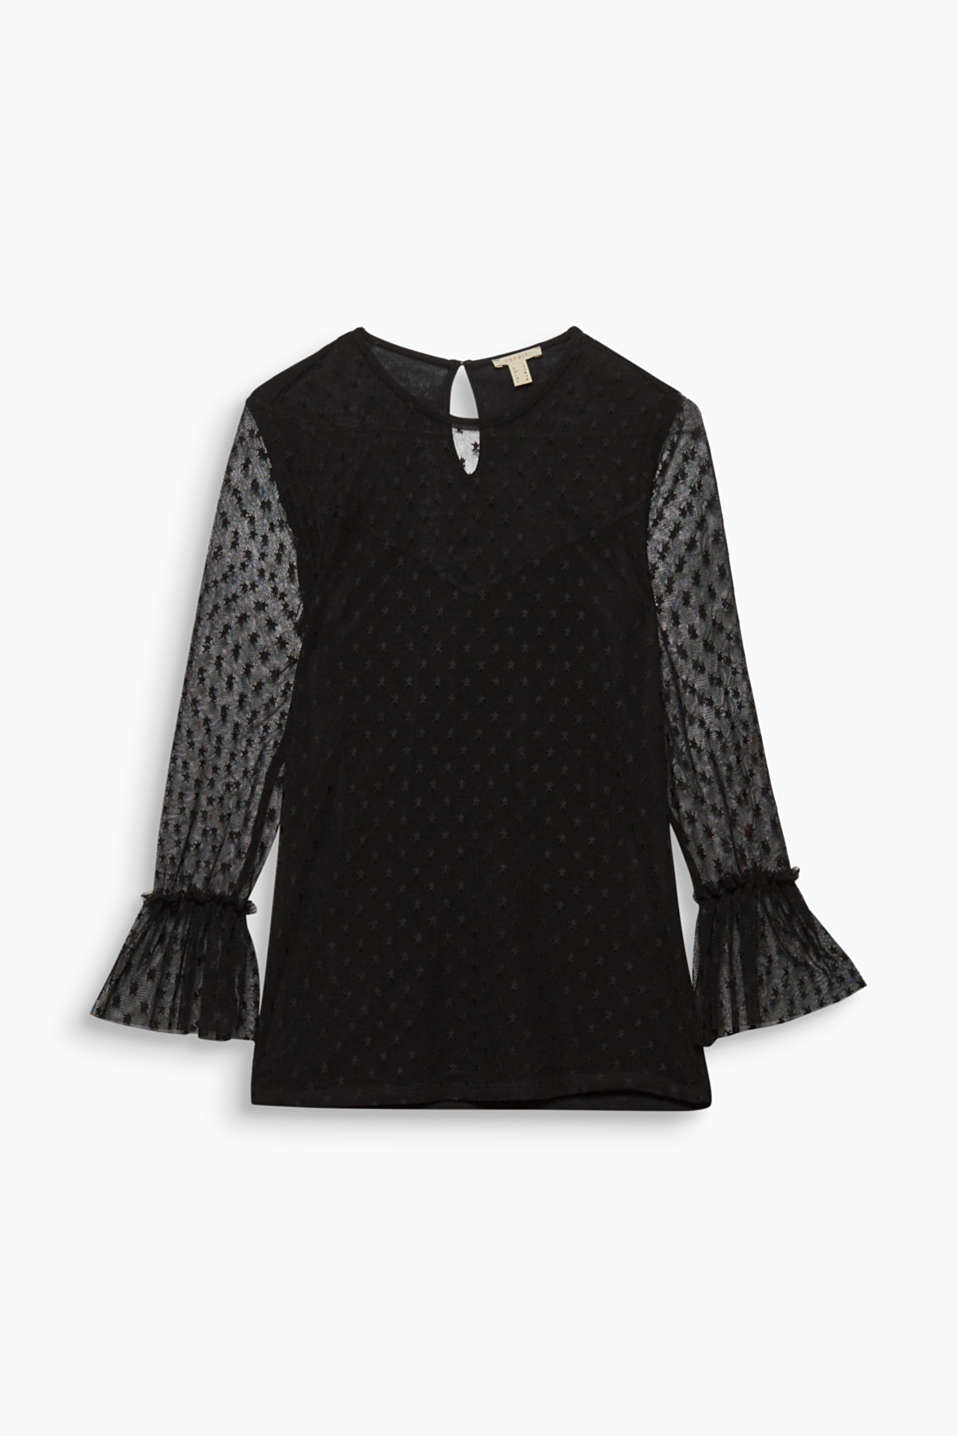 This semi-sheer top with stars and three-quarter length trumpet sleeves is super trendy!